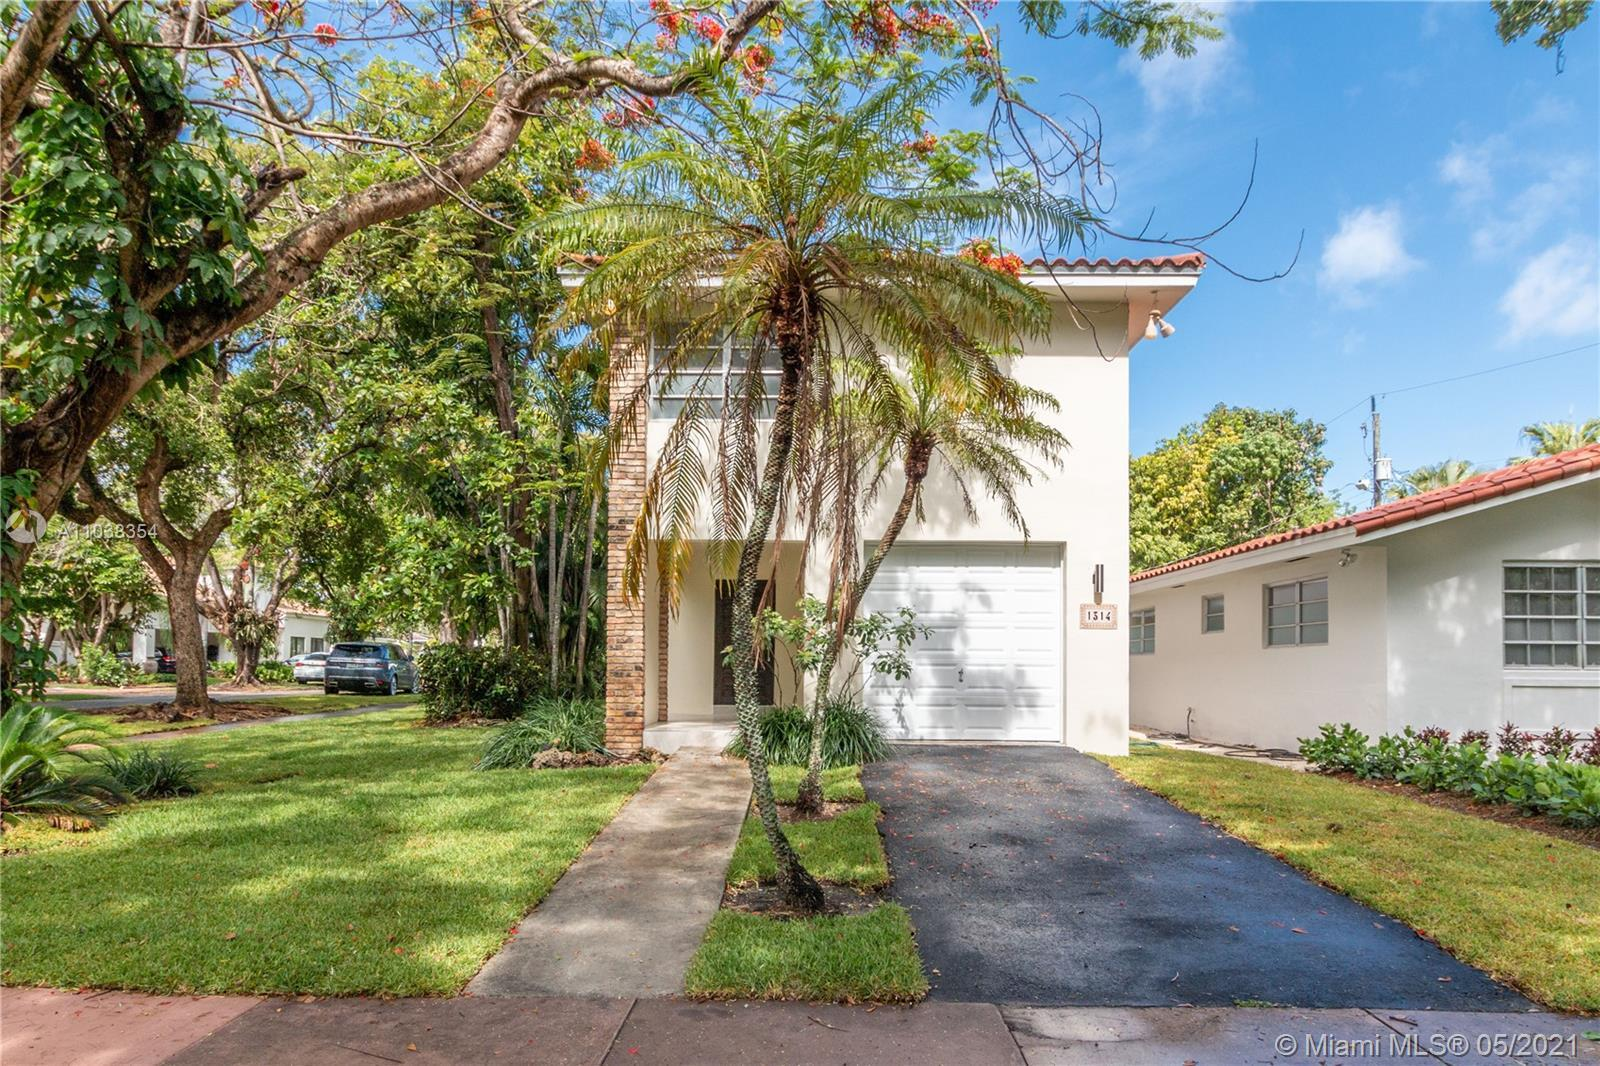 Beautifully renovated 2-story home on a tree lined street minutes away from Granada Golf Course and